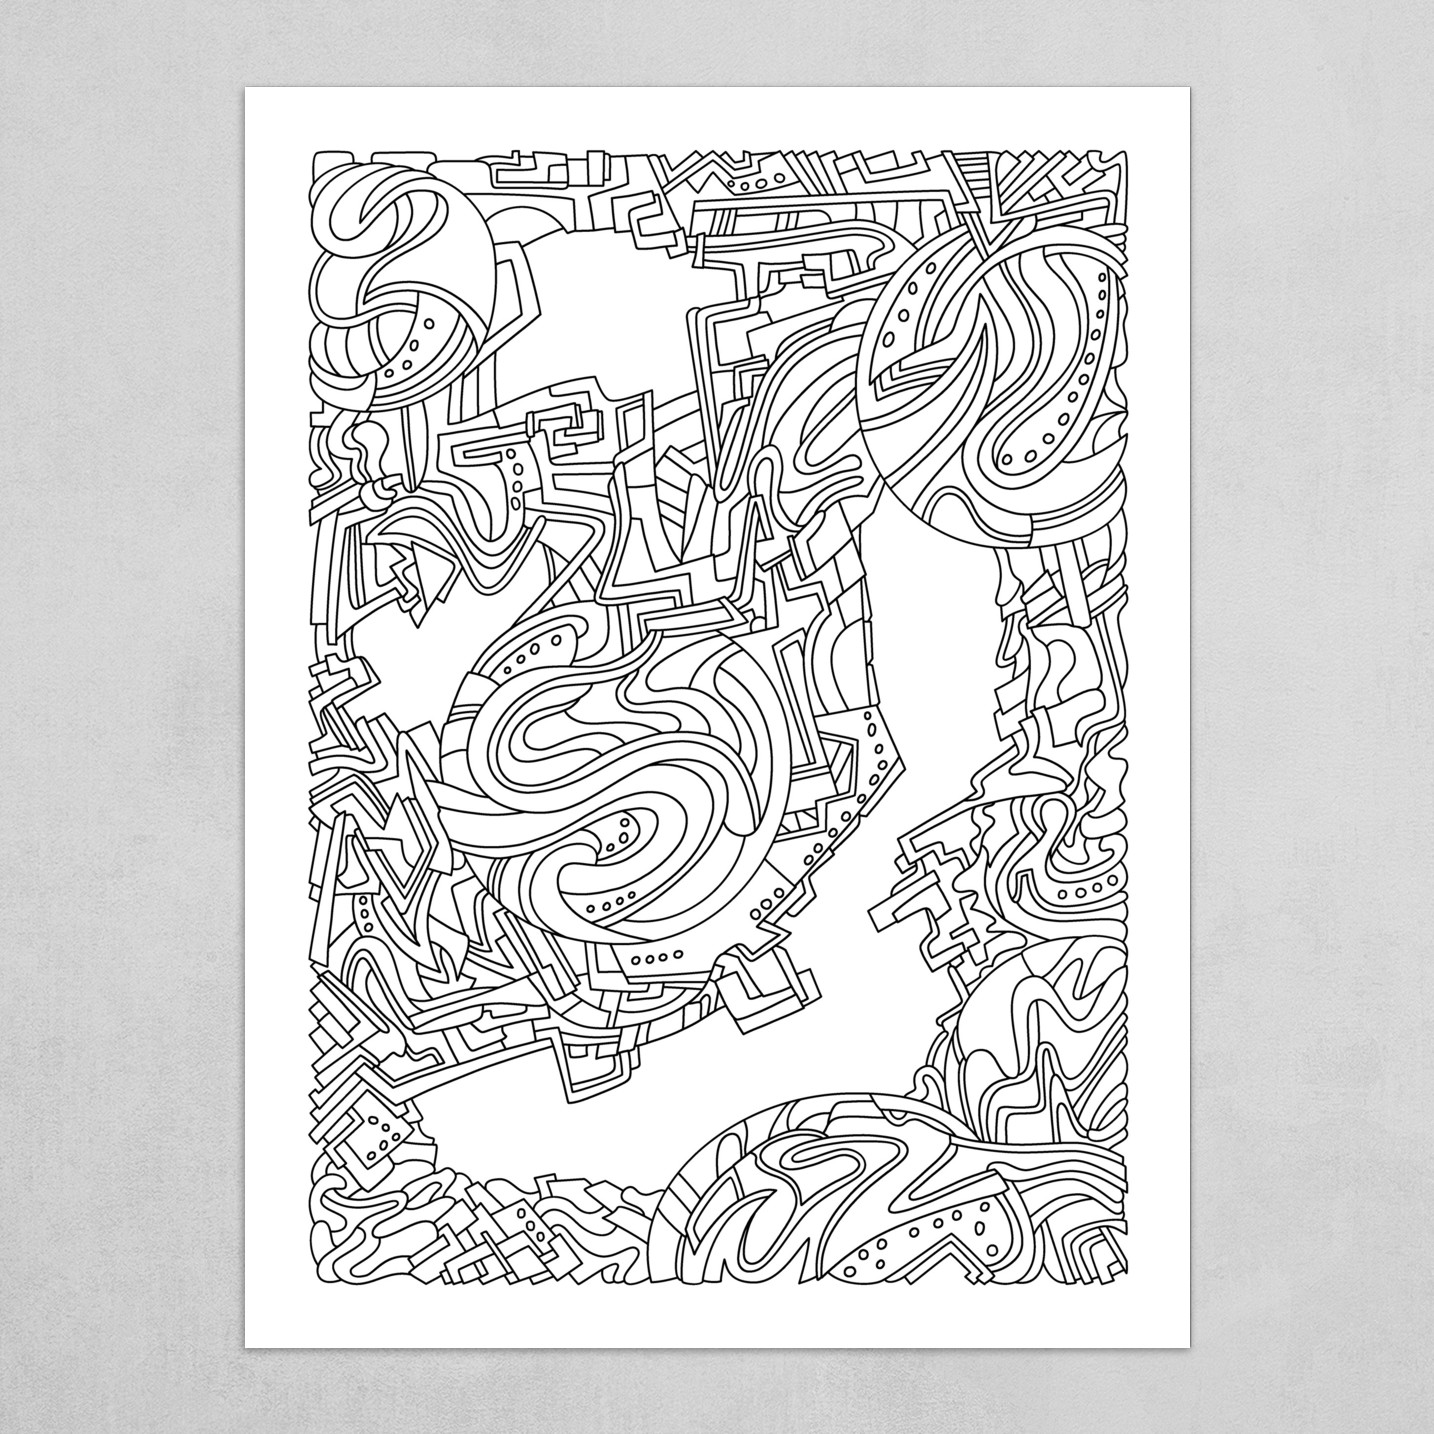 Wandering Abstract Line Art 21: Black & White